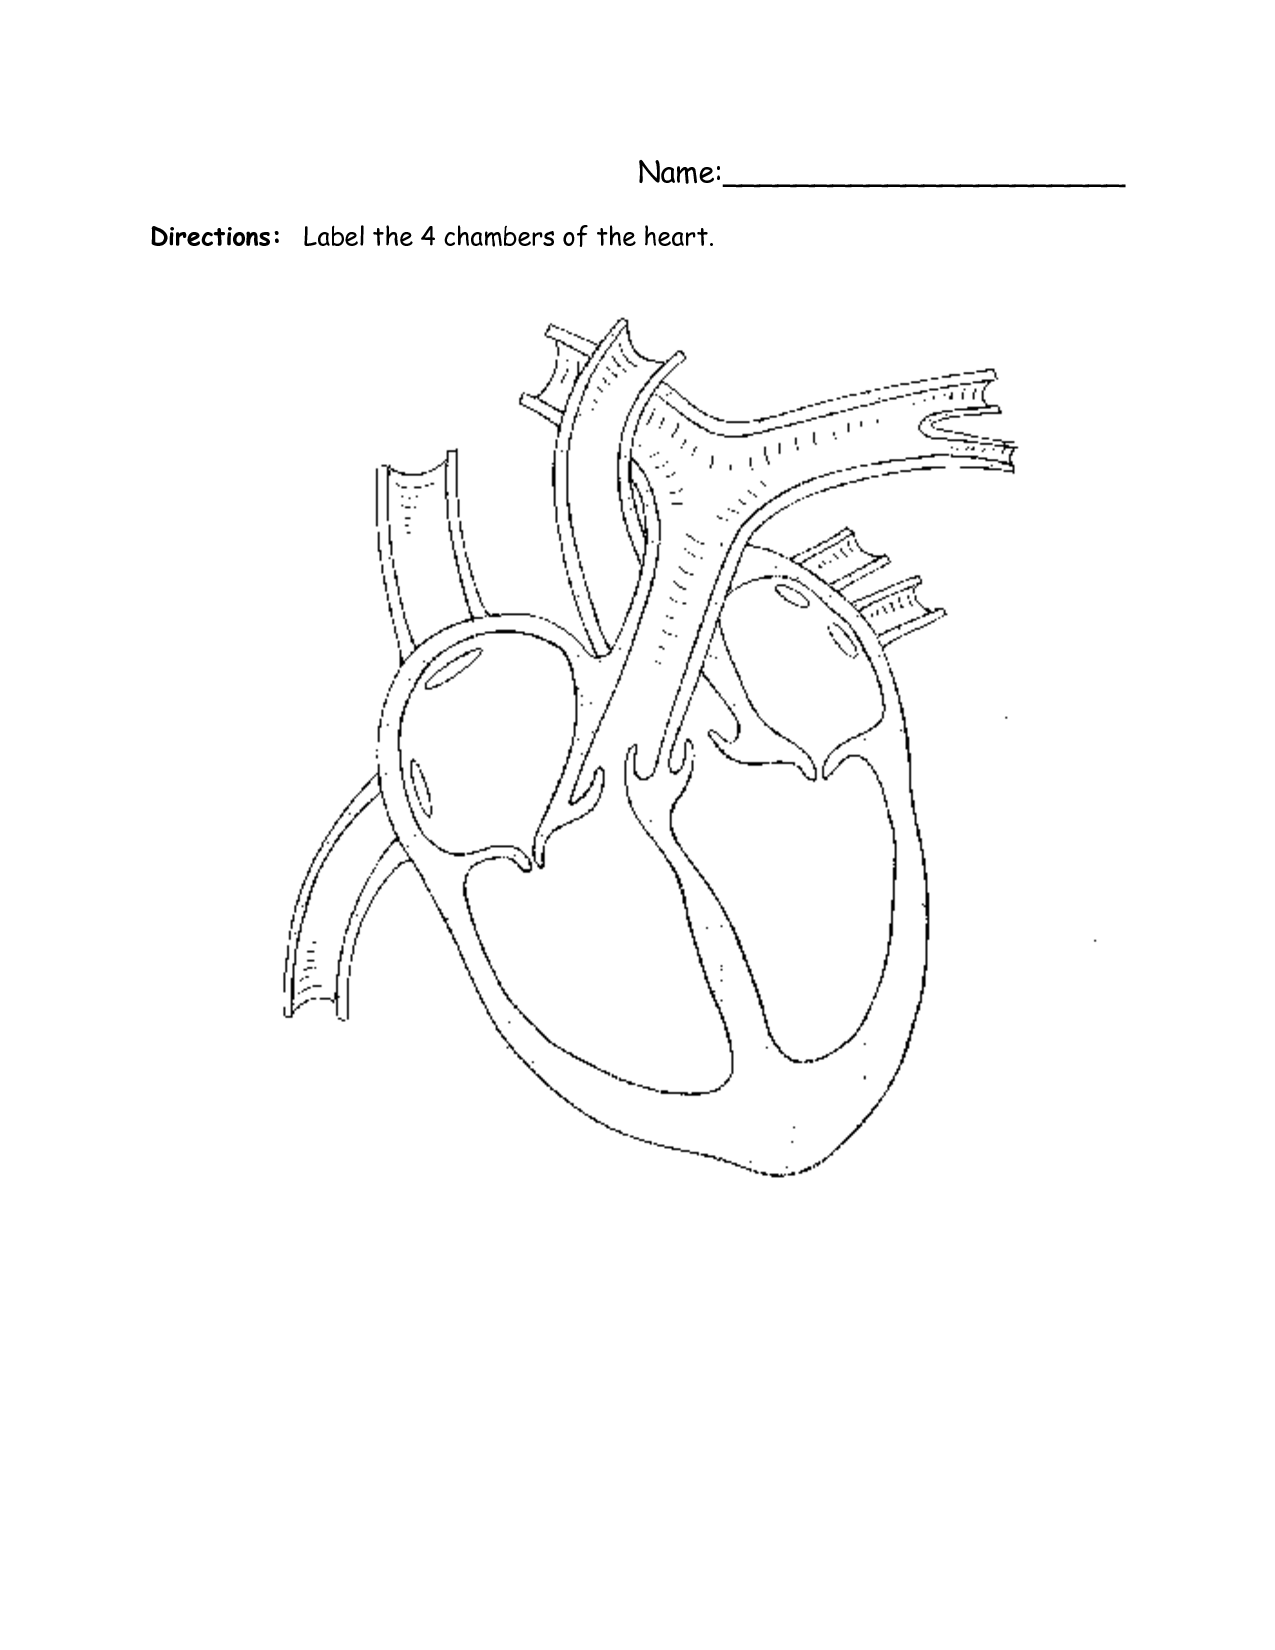 Blank Heart Diagram Worksheet Blank Human Heart Diagram Learning Me Pinterest Human Heart